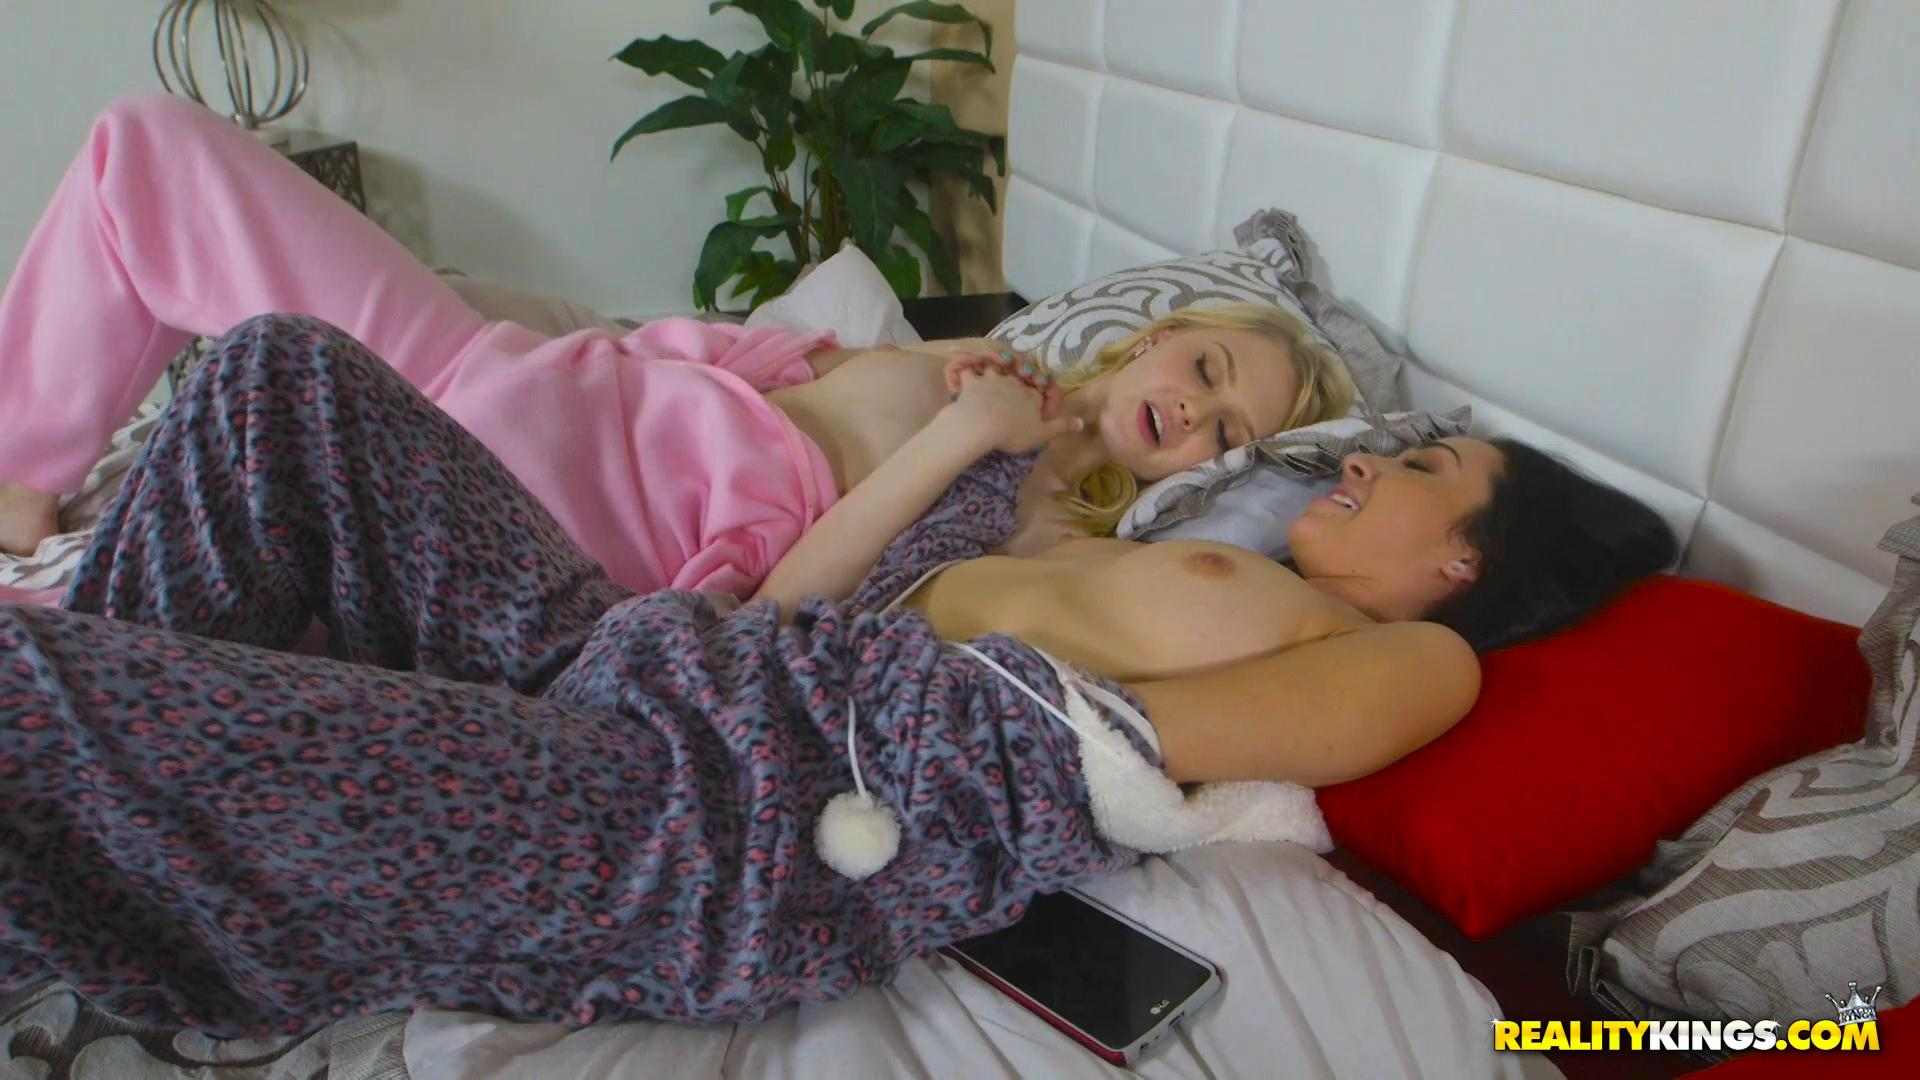 WeLiveTogether – Lily Rader And Kiley Jay Ass Out Tongue In